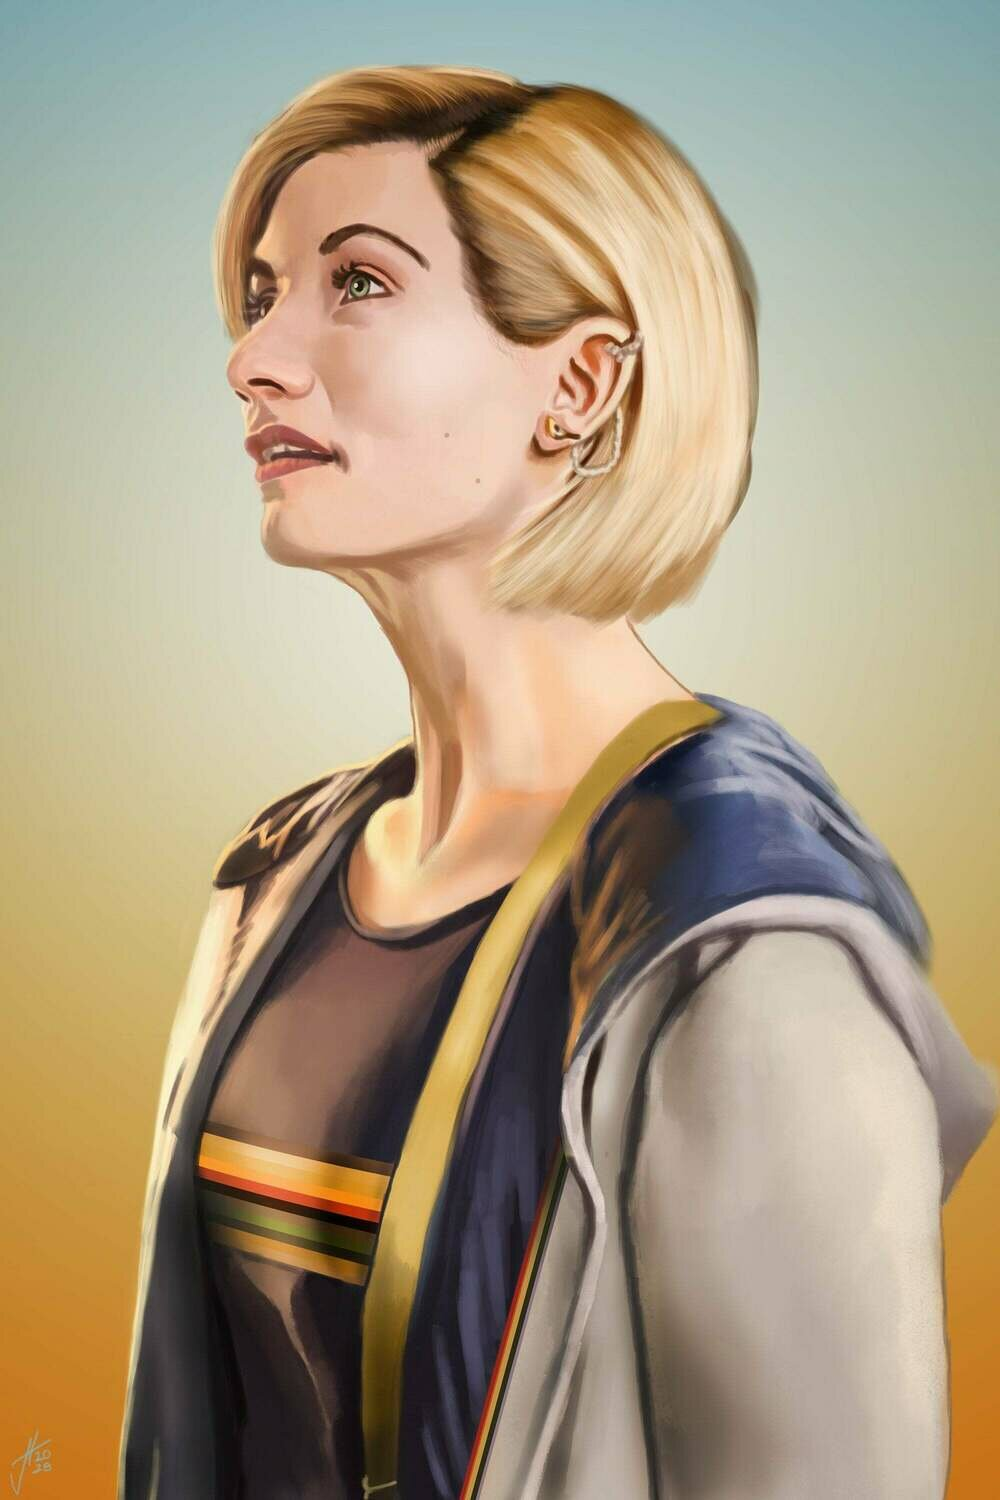 Doctor Who Jodie Whittaker Portrait Art Print